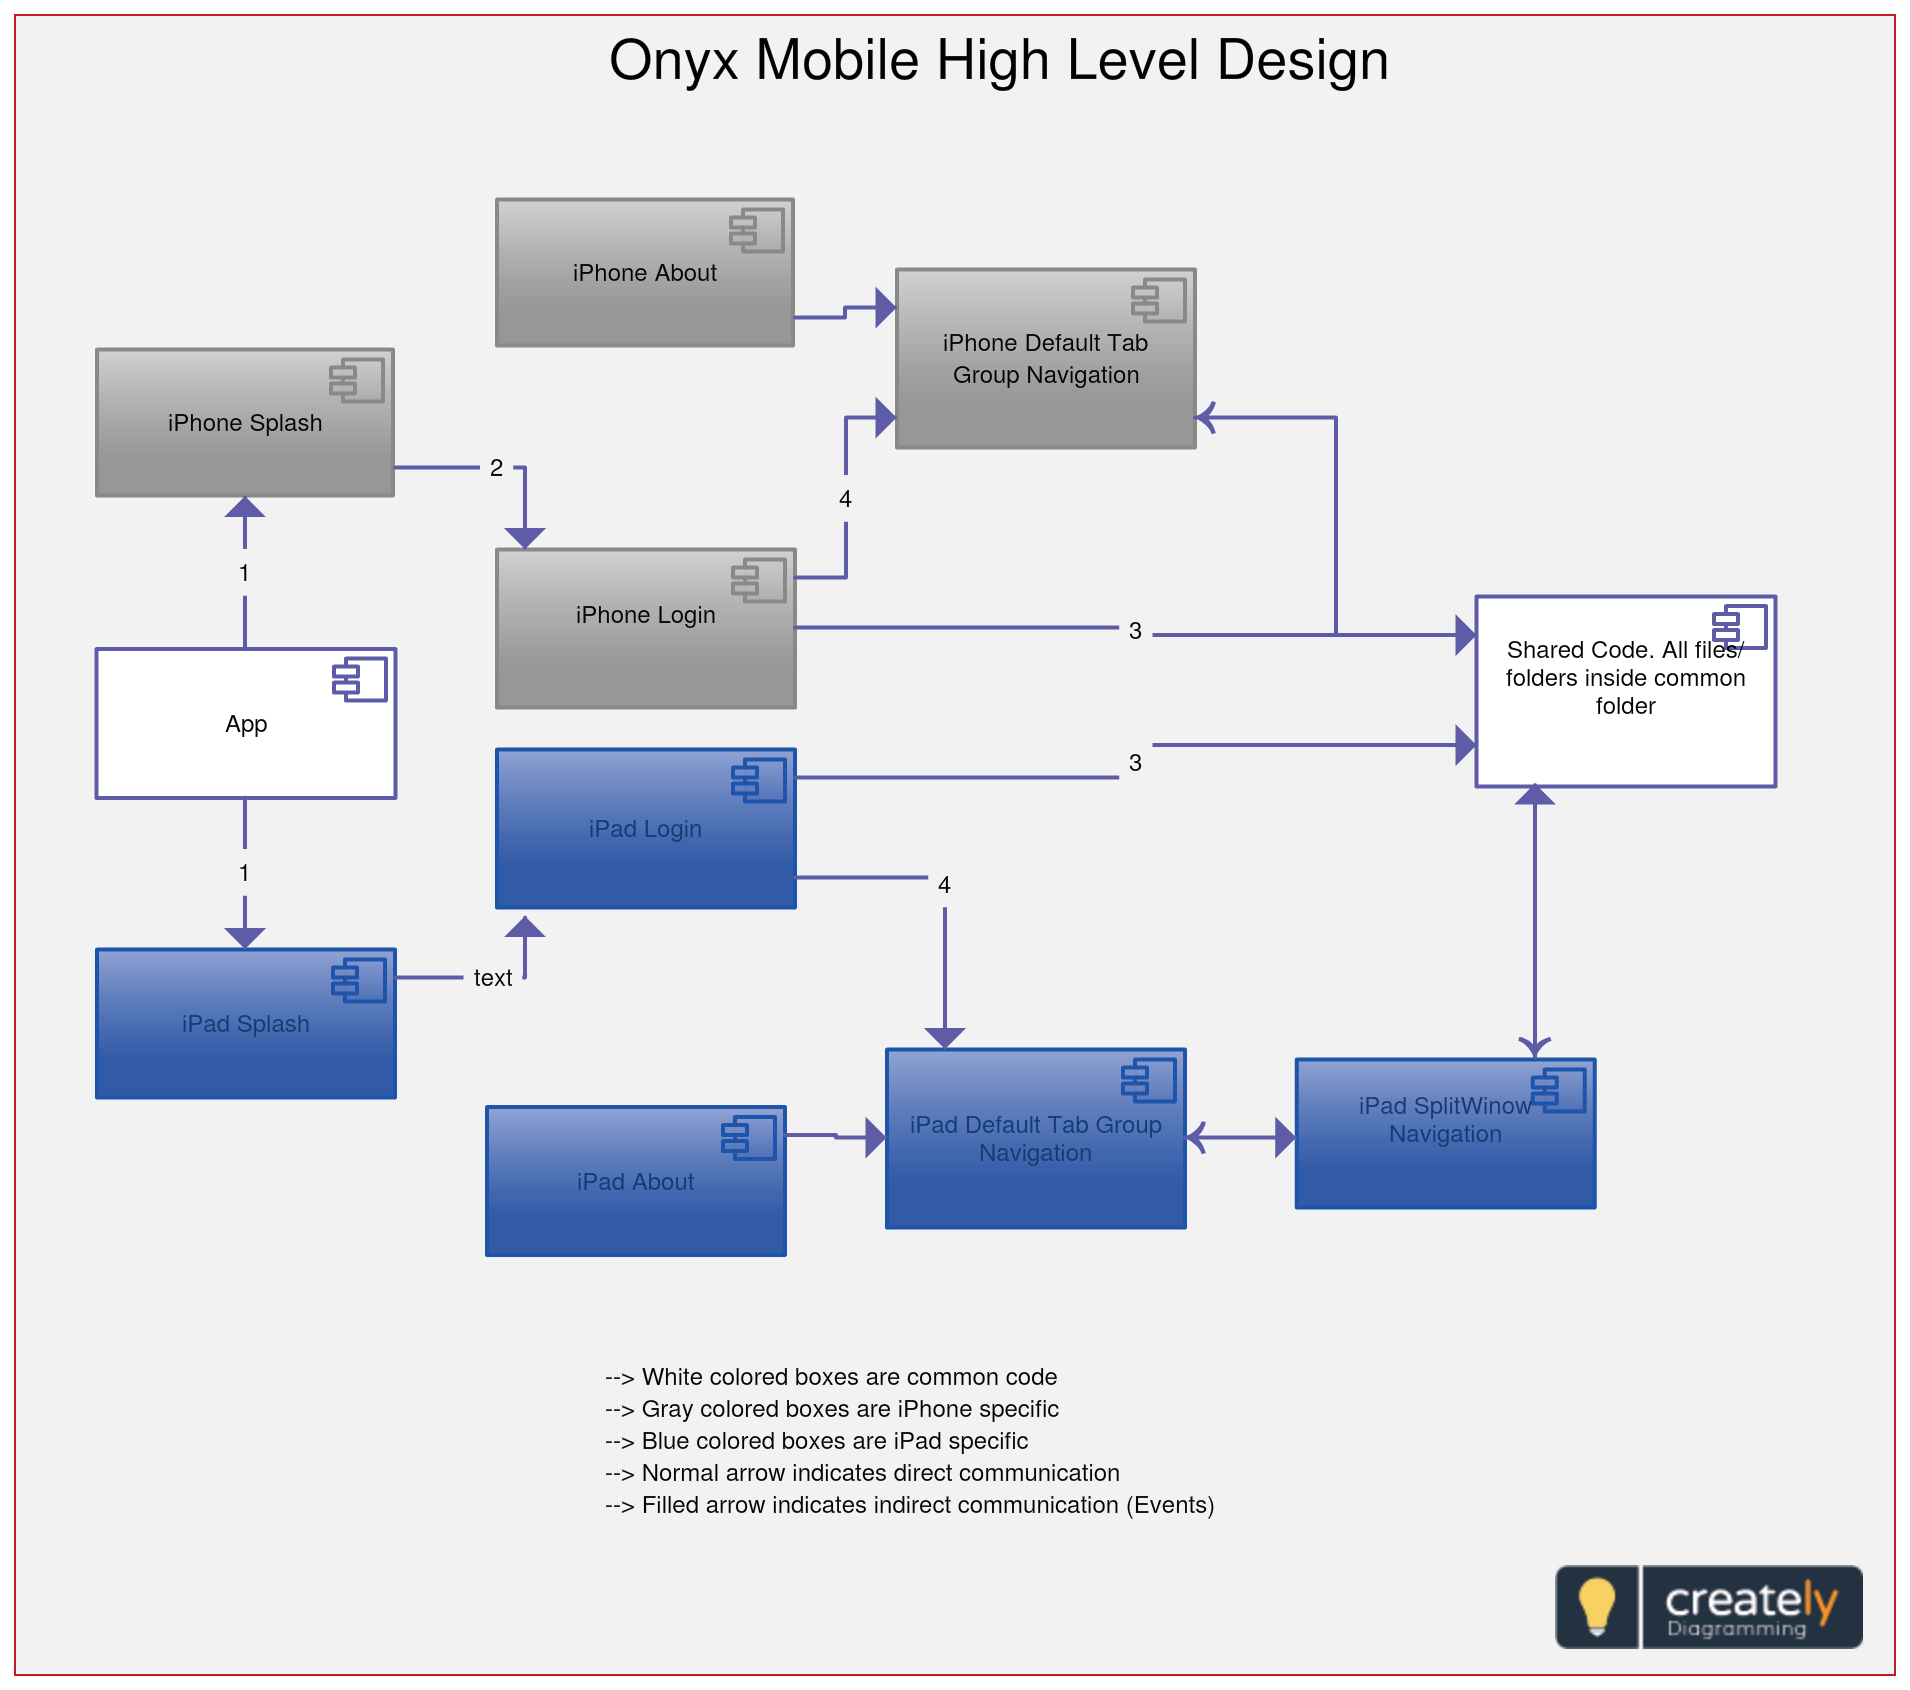 medium resolution of high level design hld explains the architecture that would be used for developing